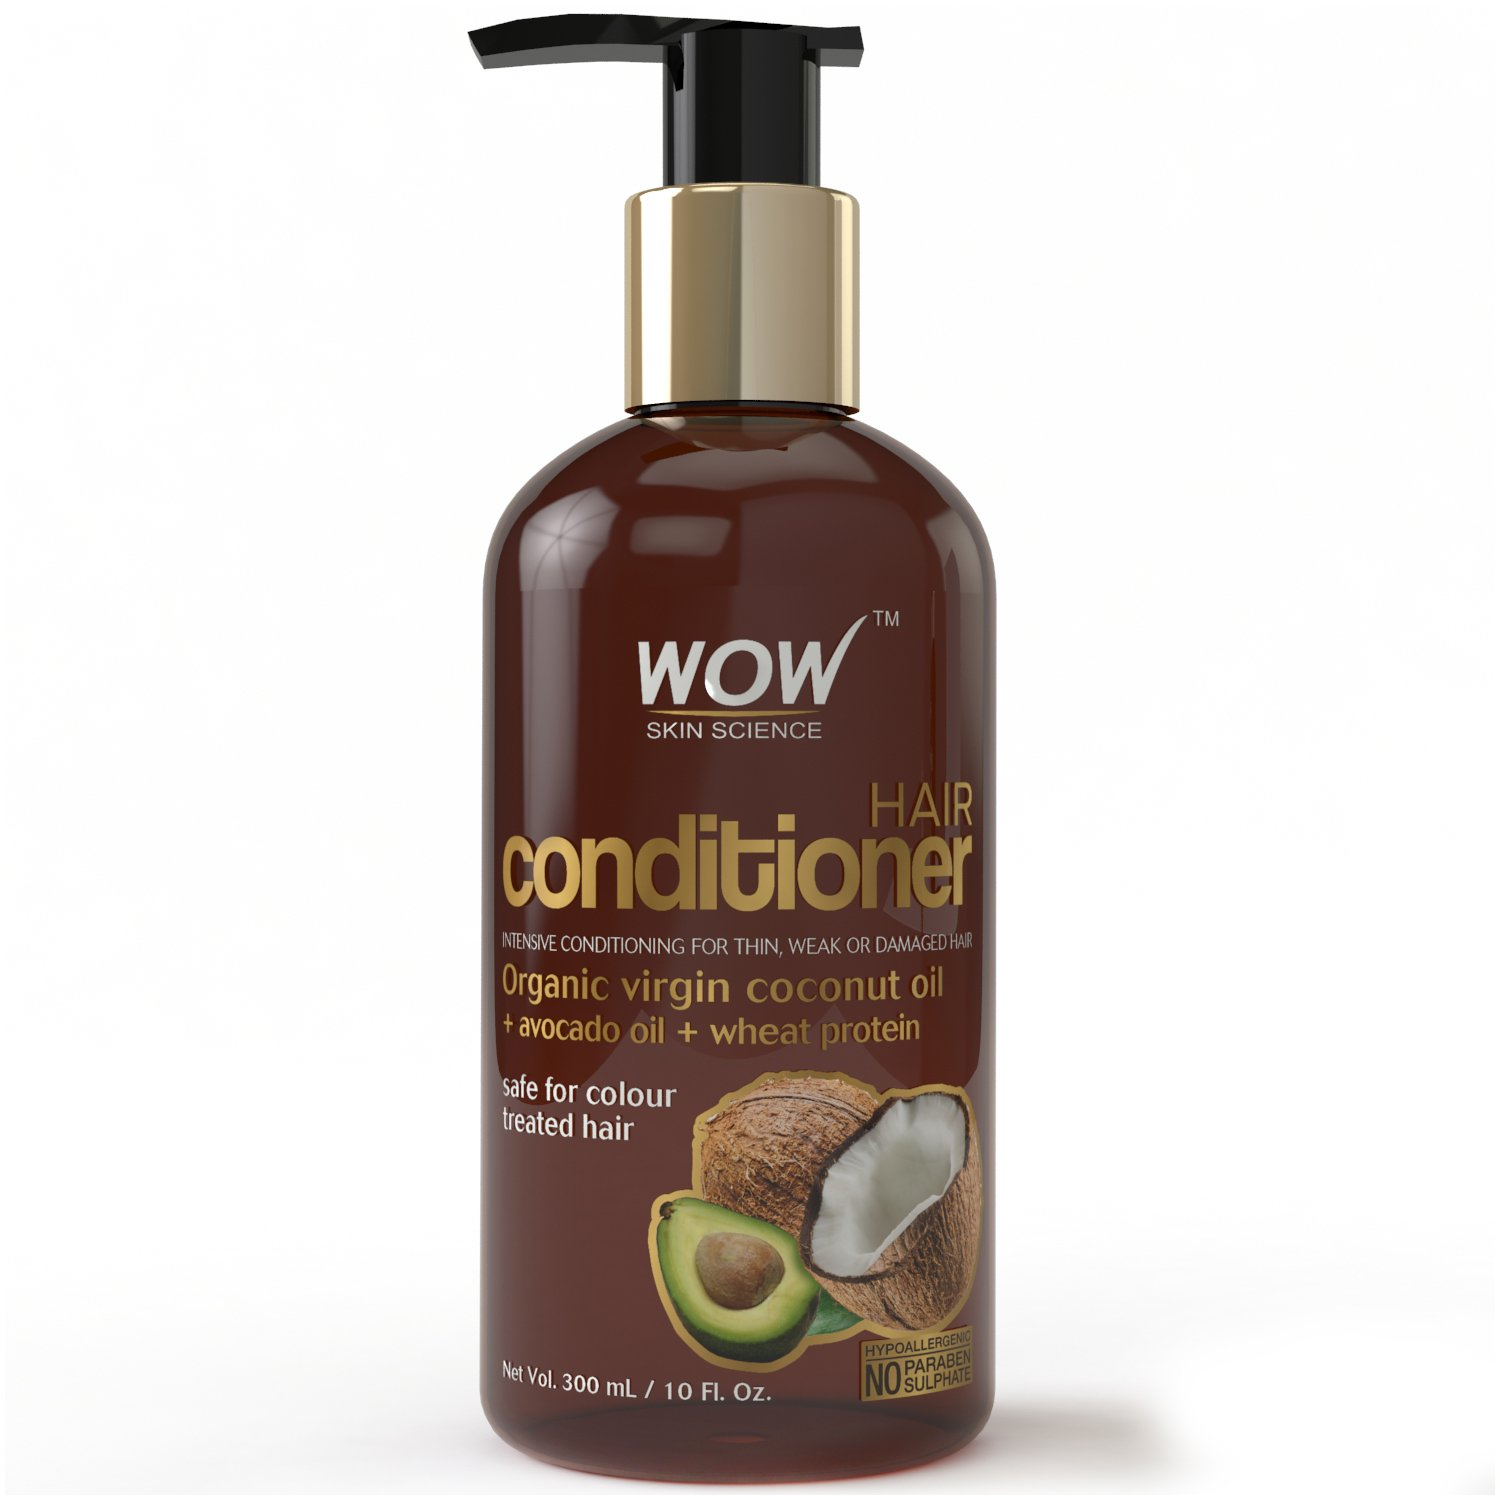 WOW Hair Conditioner - No Paraben and Sulphate, 300 ml